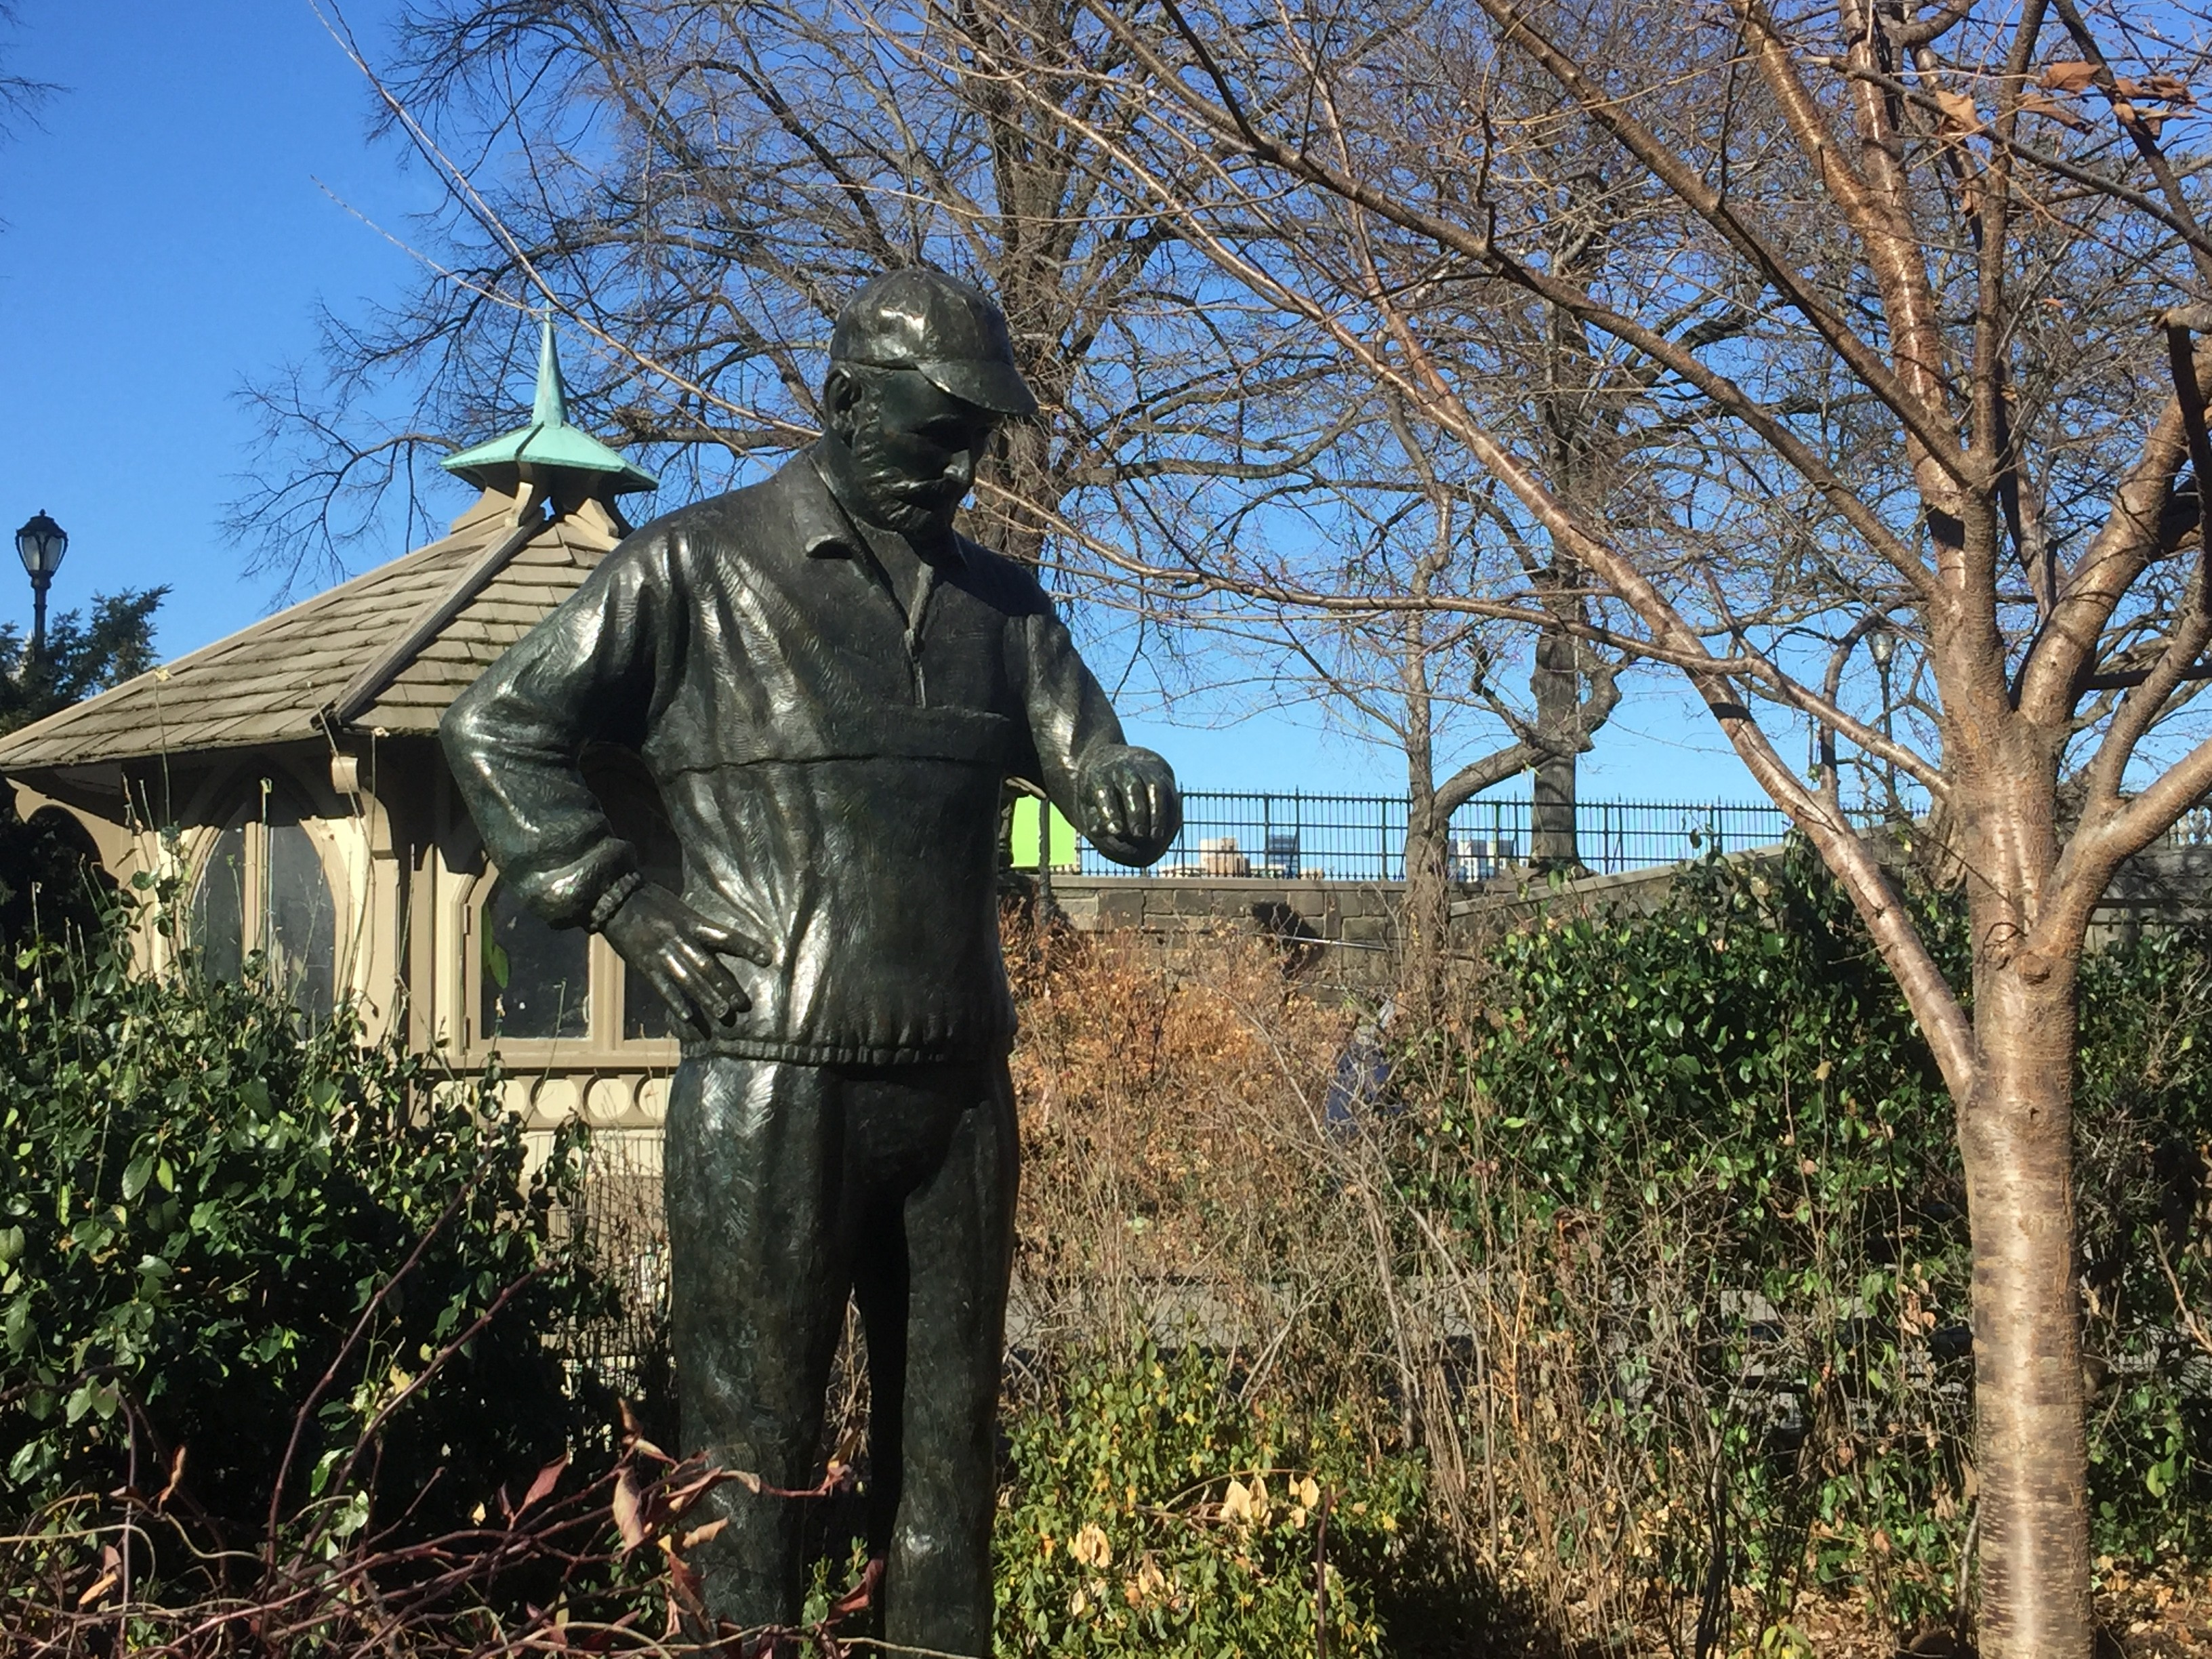 Fred LeBow's Statue in Central Park Reminds us of the Man